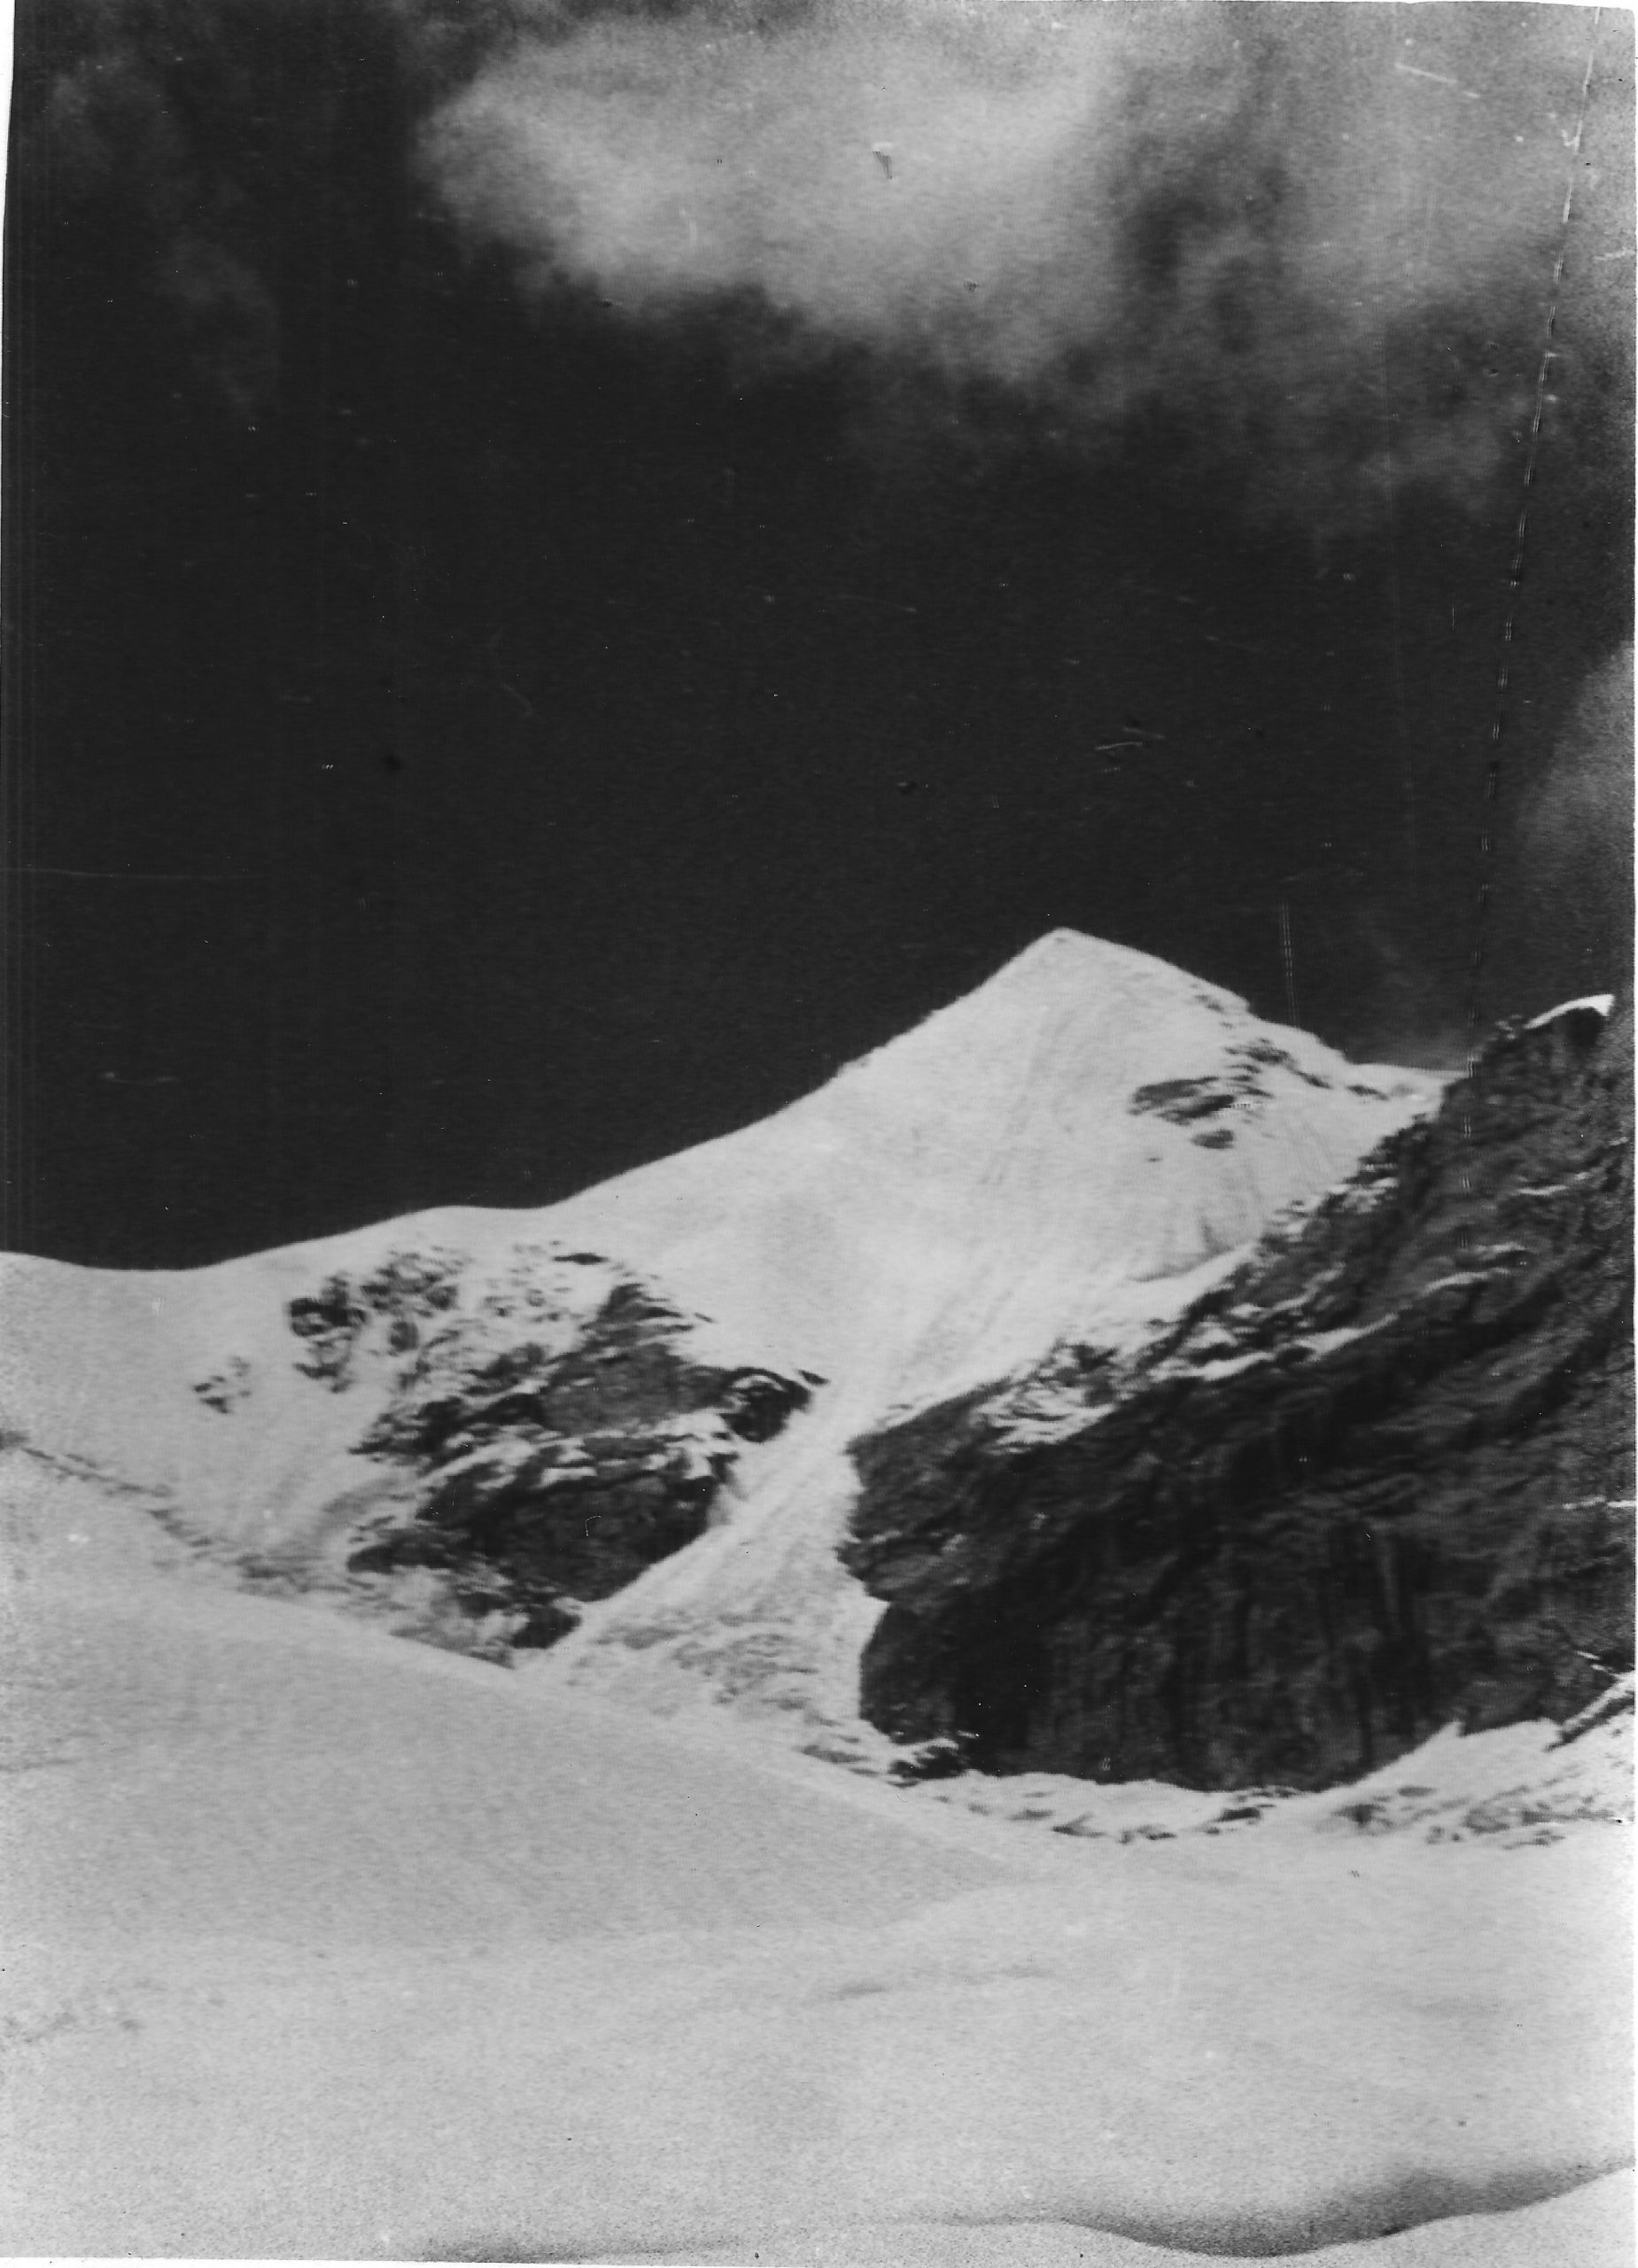 Lalana, a peak that has only been scaled once, was named by the expedition team 50 years ago [image by: Sudipta Sengupta]